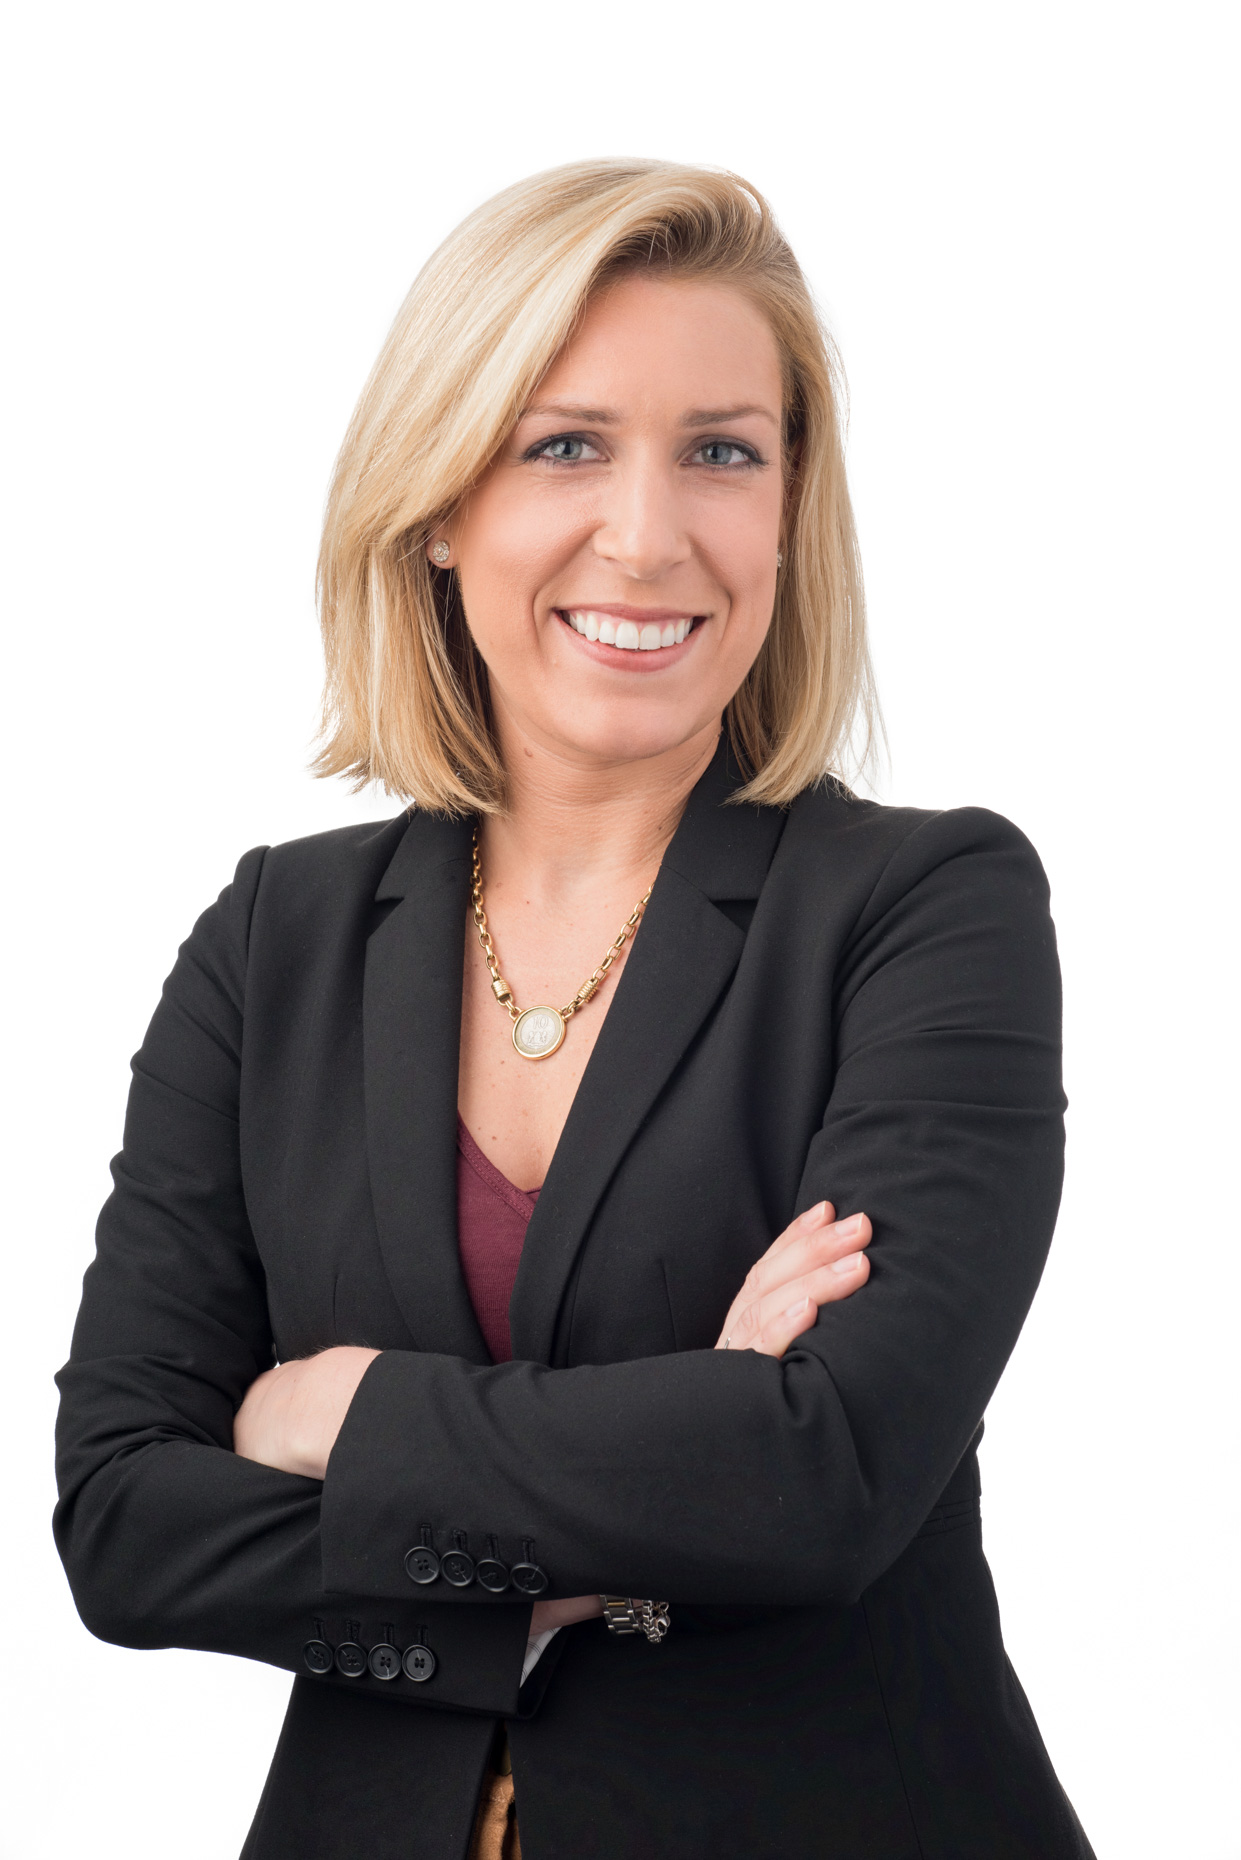 A corporate portrait of Client Engagement Specialist, Jane Connolly of financial firm, Fiera Capital